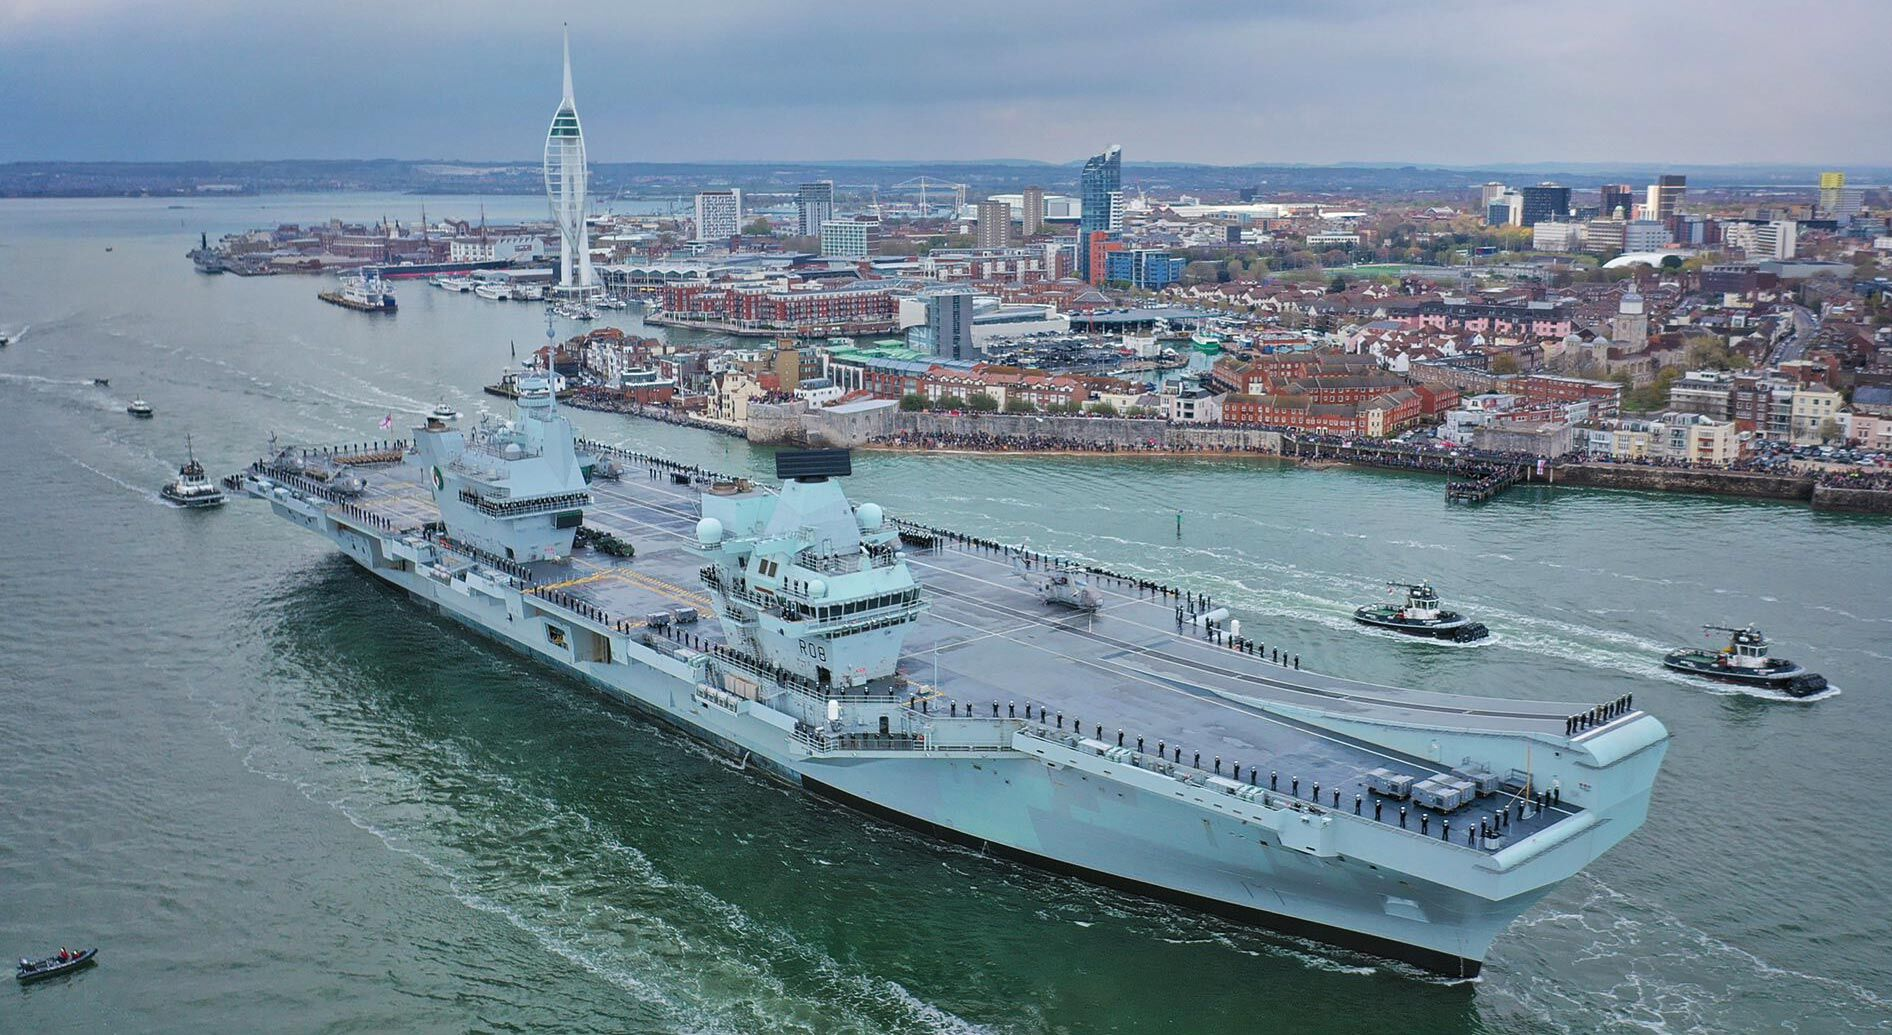 The UK Carrier Strike Group sets sail